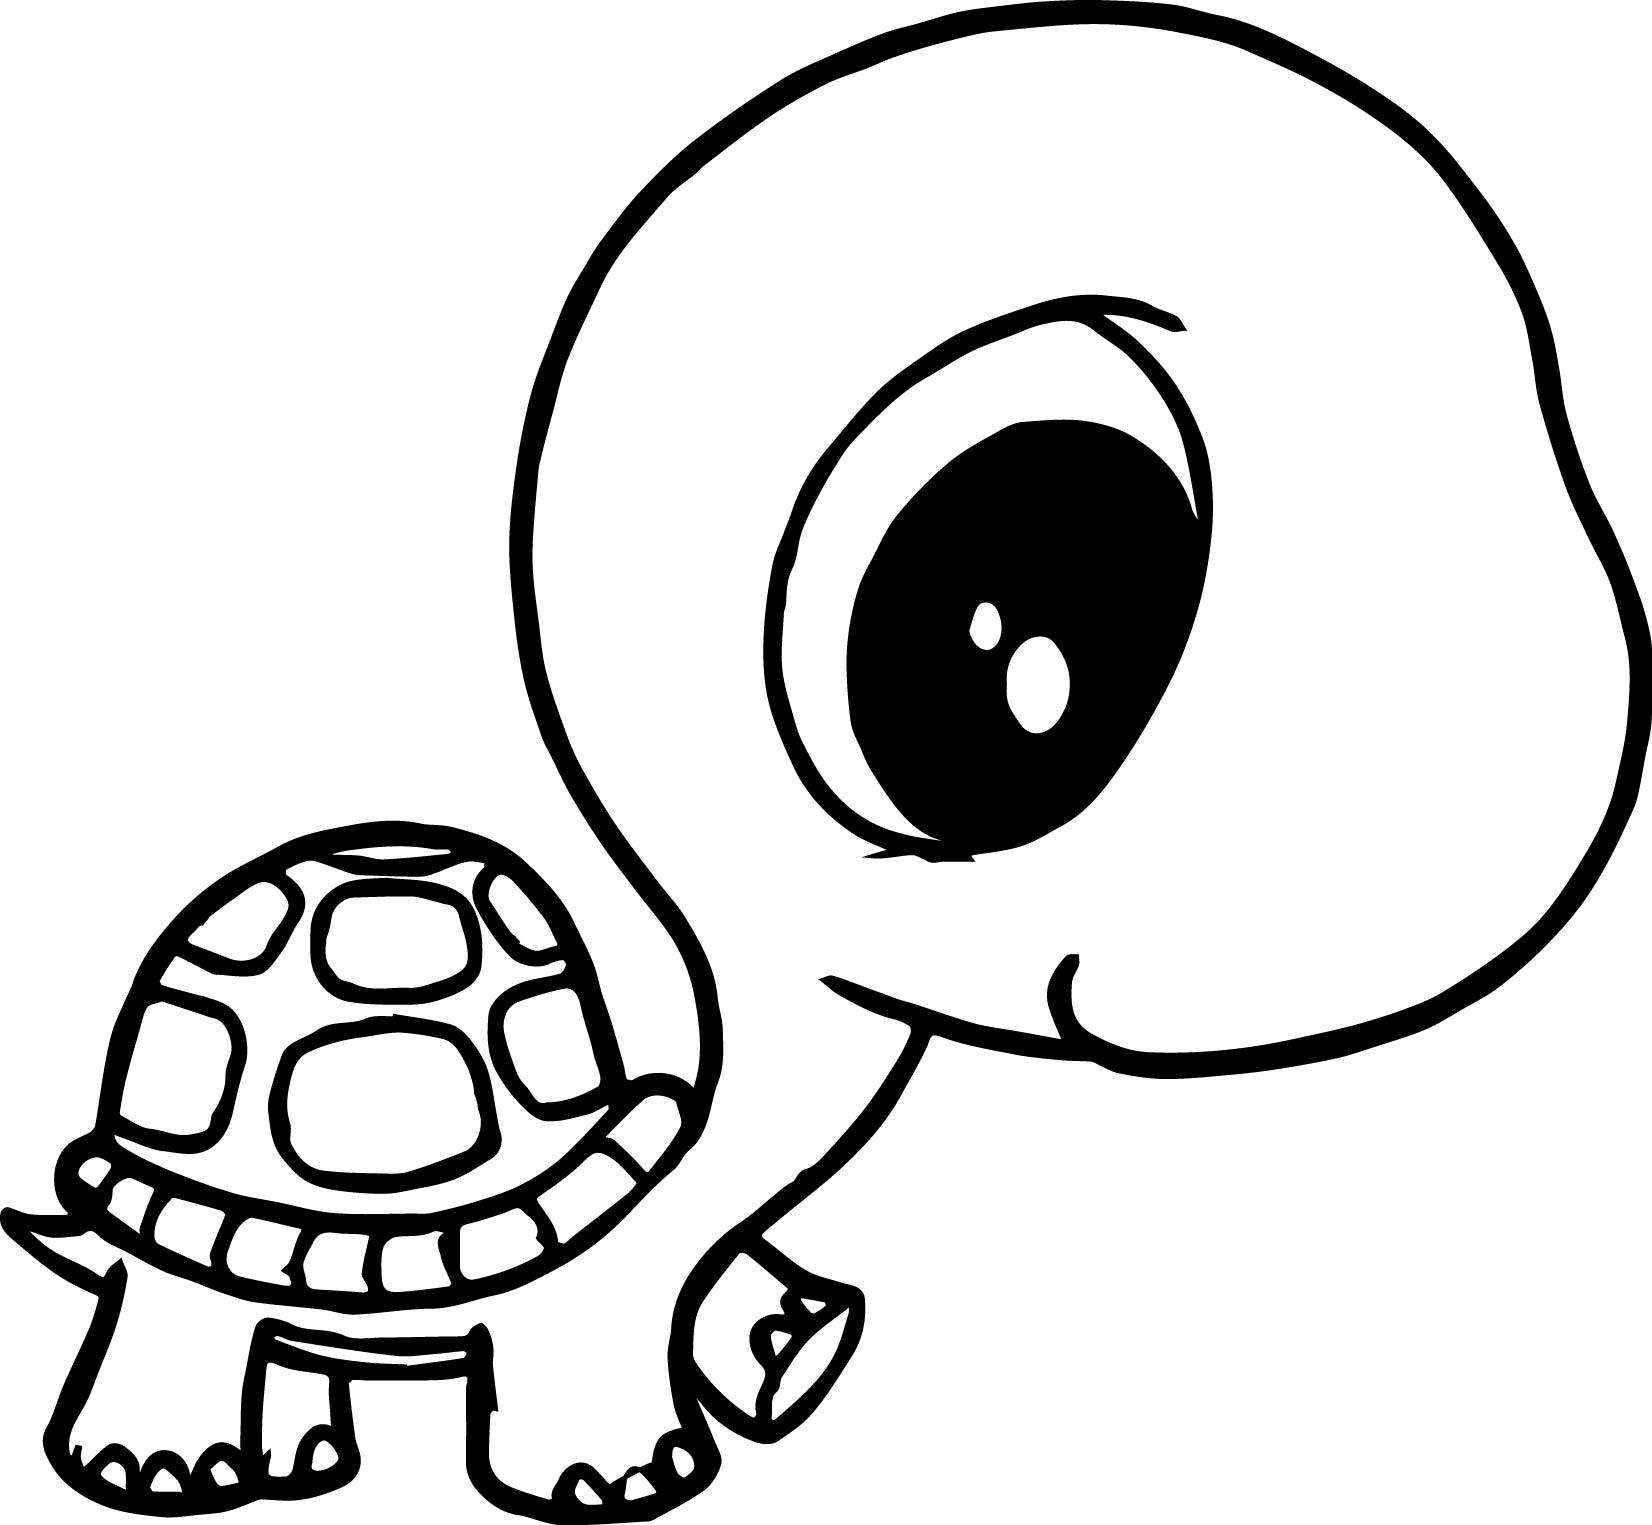 cute coloring animal pages cute animals coloring pages coloring pages for kids pages coloring cute animal